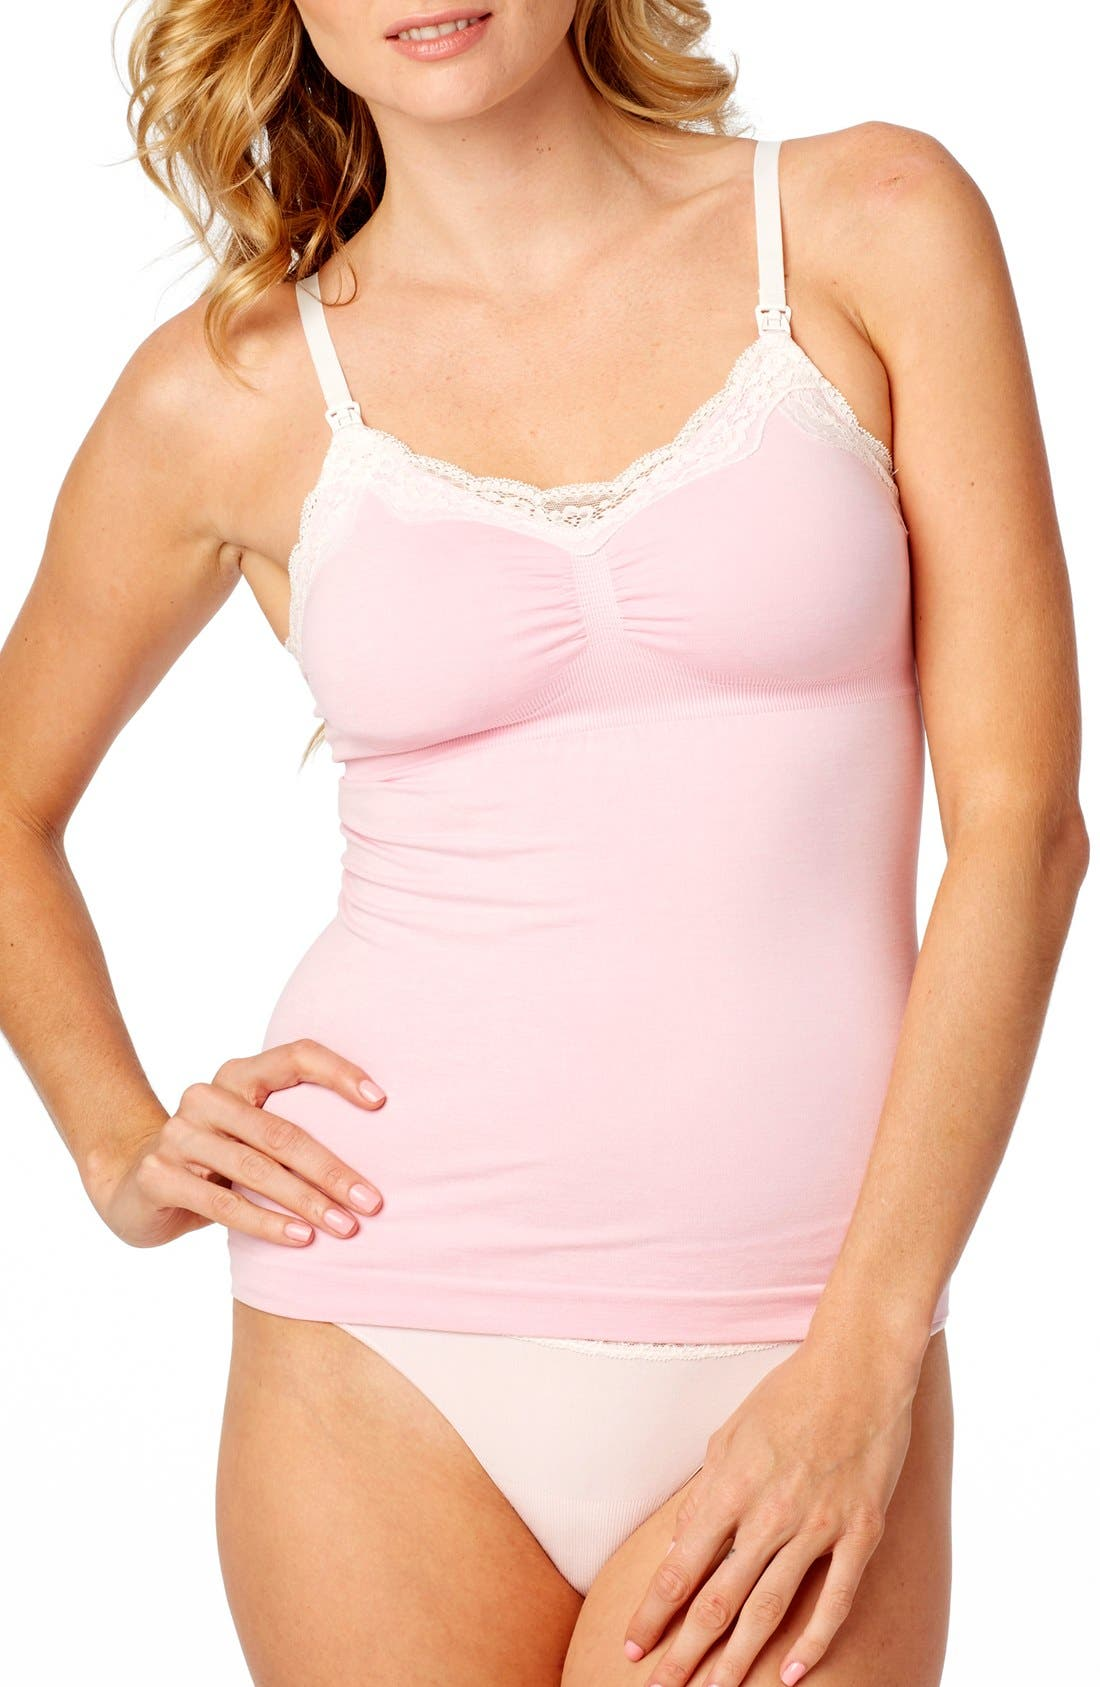 Rosie Pope Seamless Lace Trim Nursing Maternity Camisole